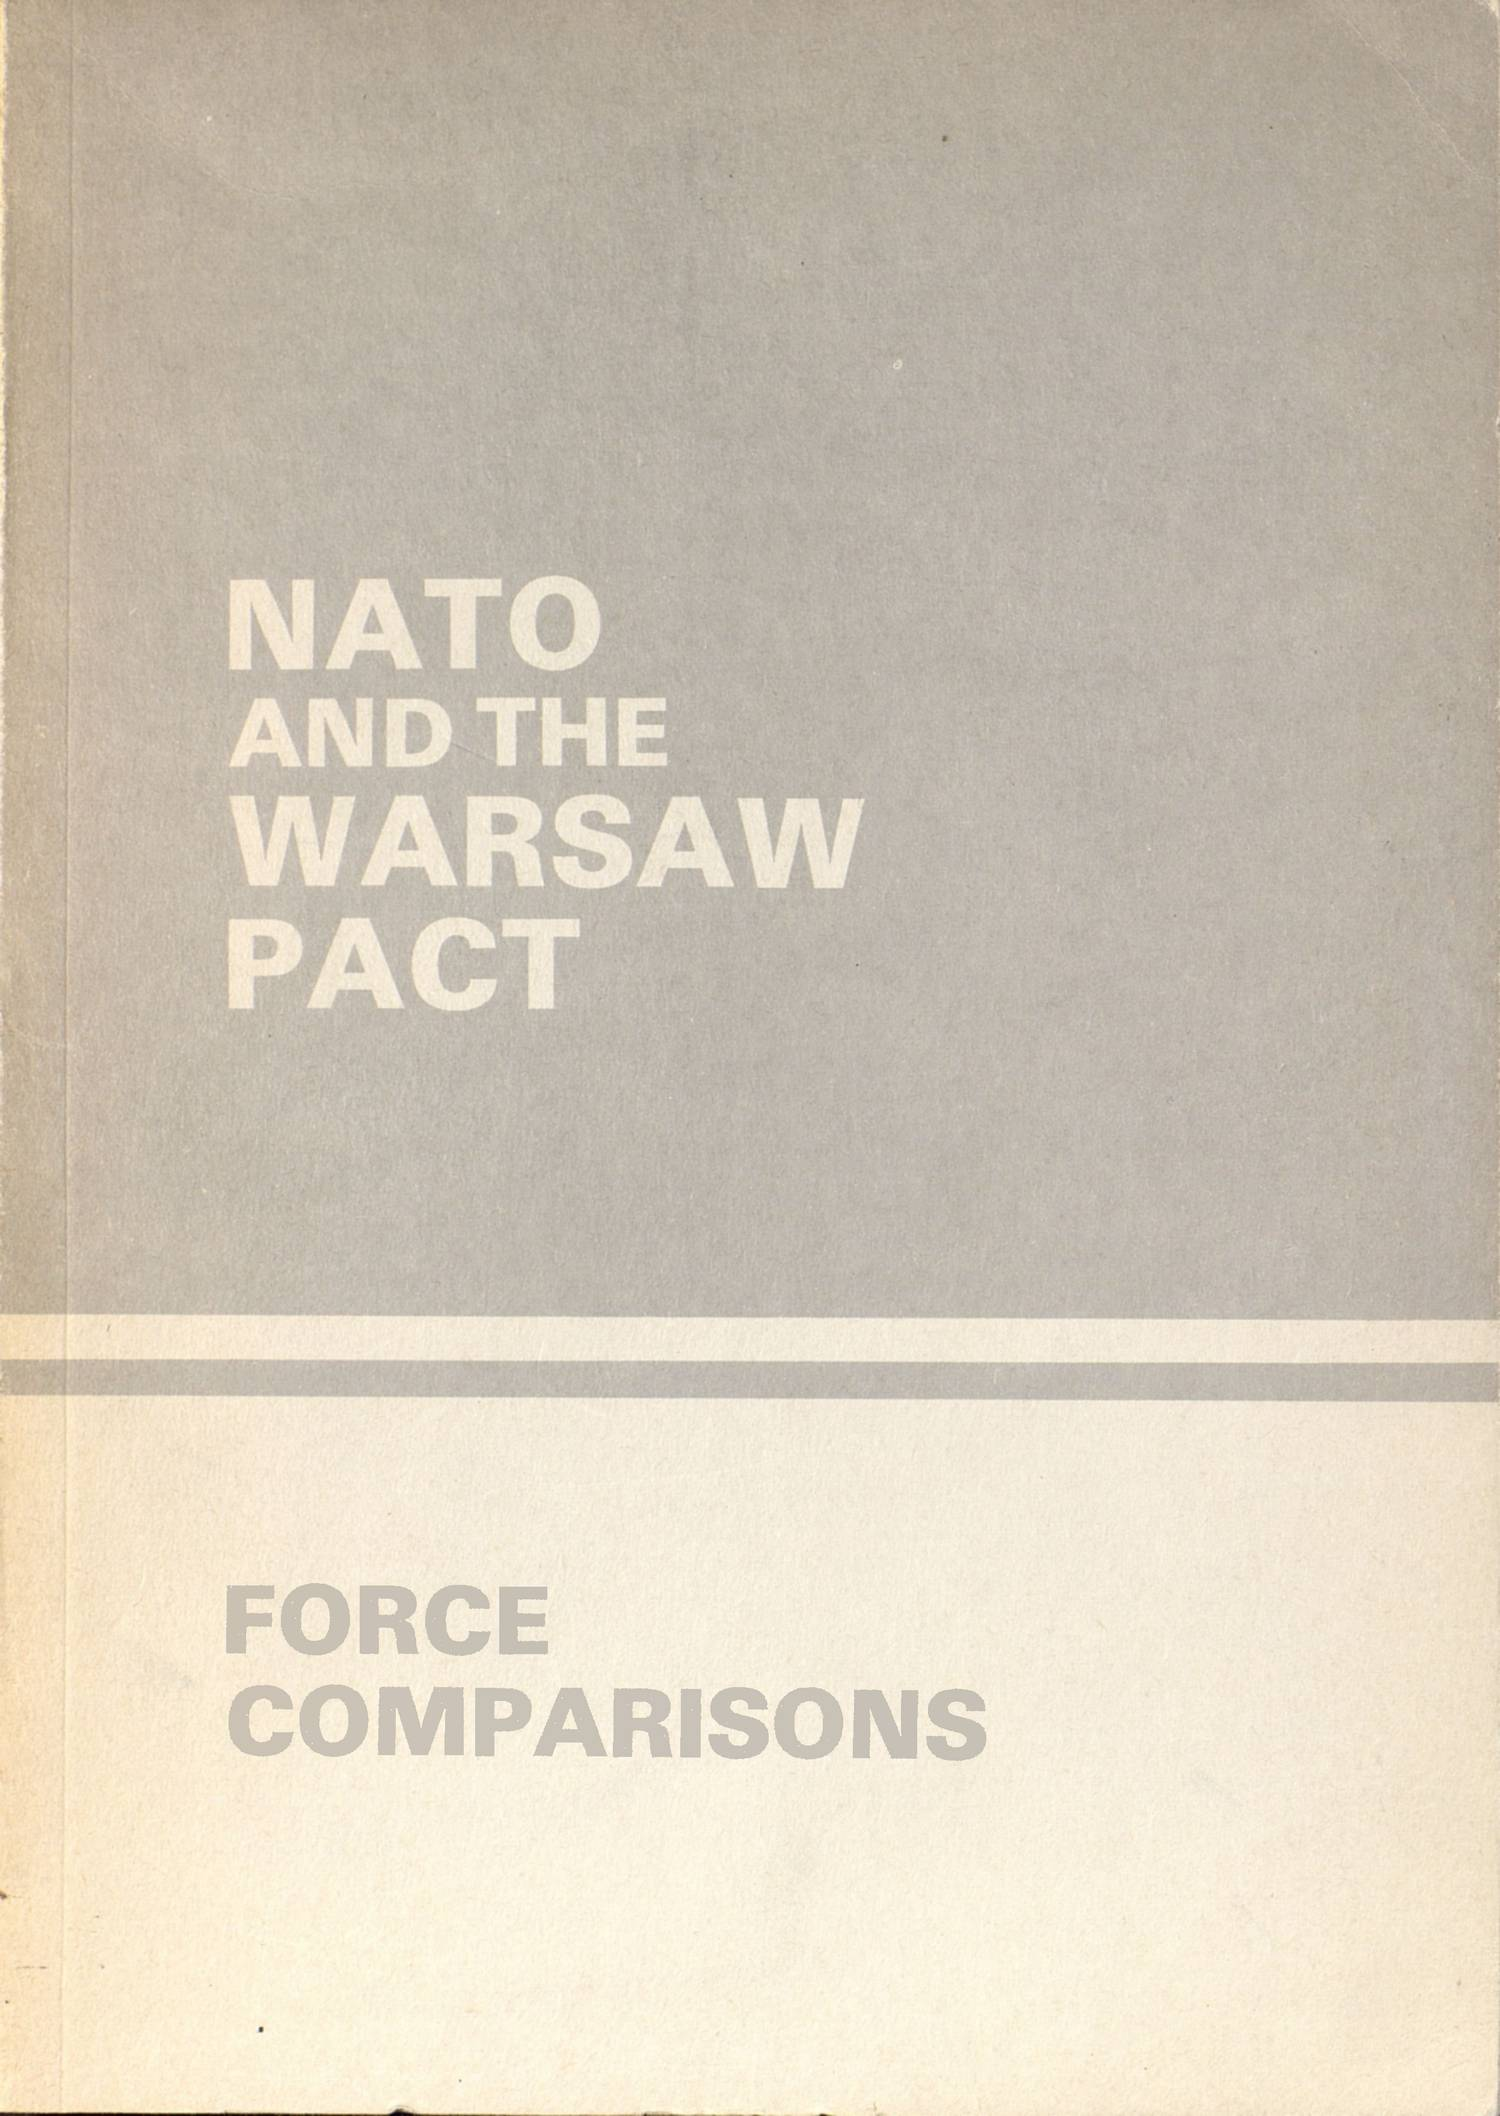 nato and the warsaw pact essay Creation of nato the north atlantic treaty organization (nato) is a regional defense alliance created by the north atlantic treaty nato's purpose is to improve the strength, well being, and freedom of its members through a system of collective security.